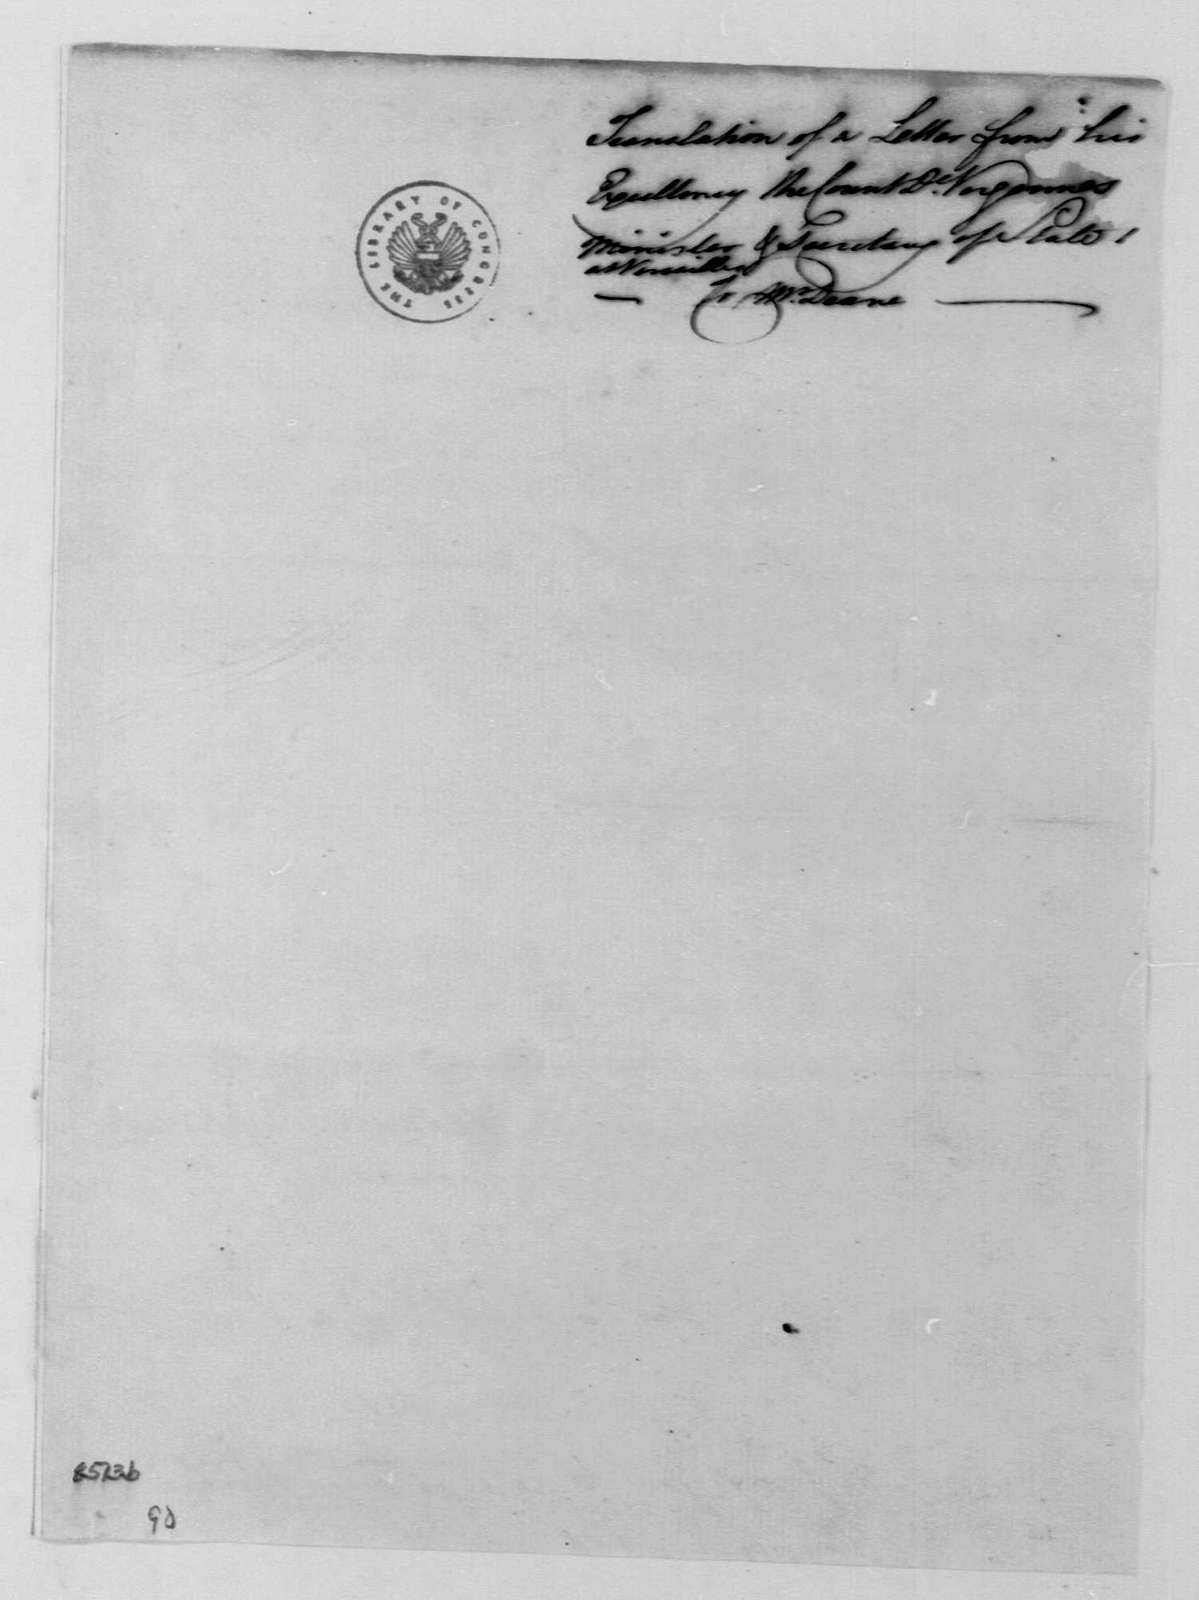 George Washington Papers, Series 4, General Correspondence: Charles Gravier, Comte de Vergennes to Silas Deane, March 26, 1778, Translation